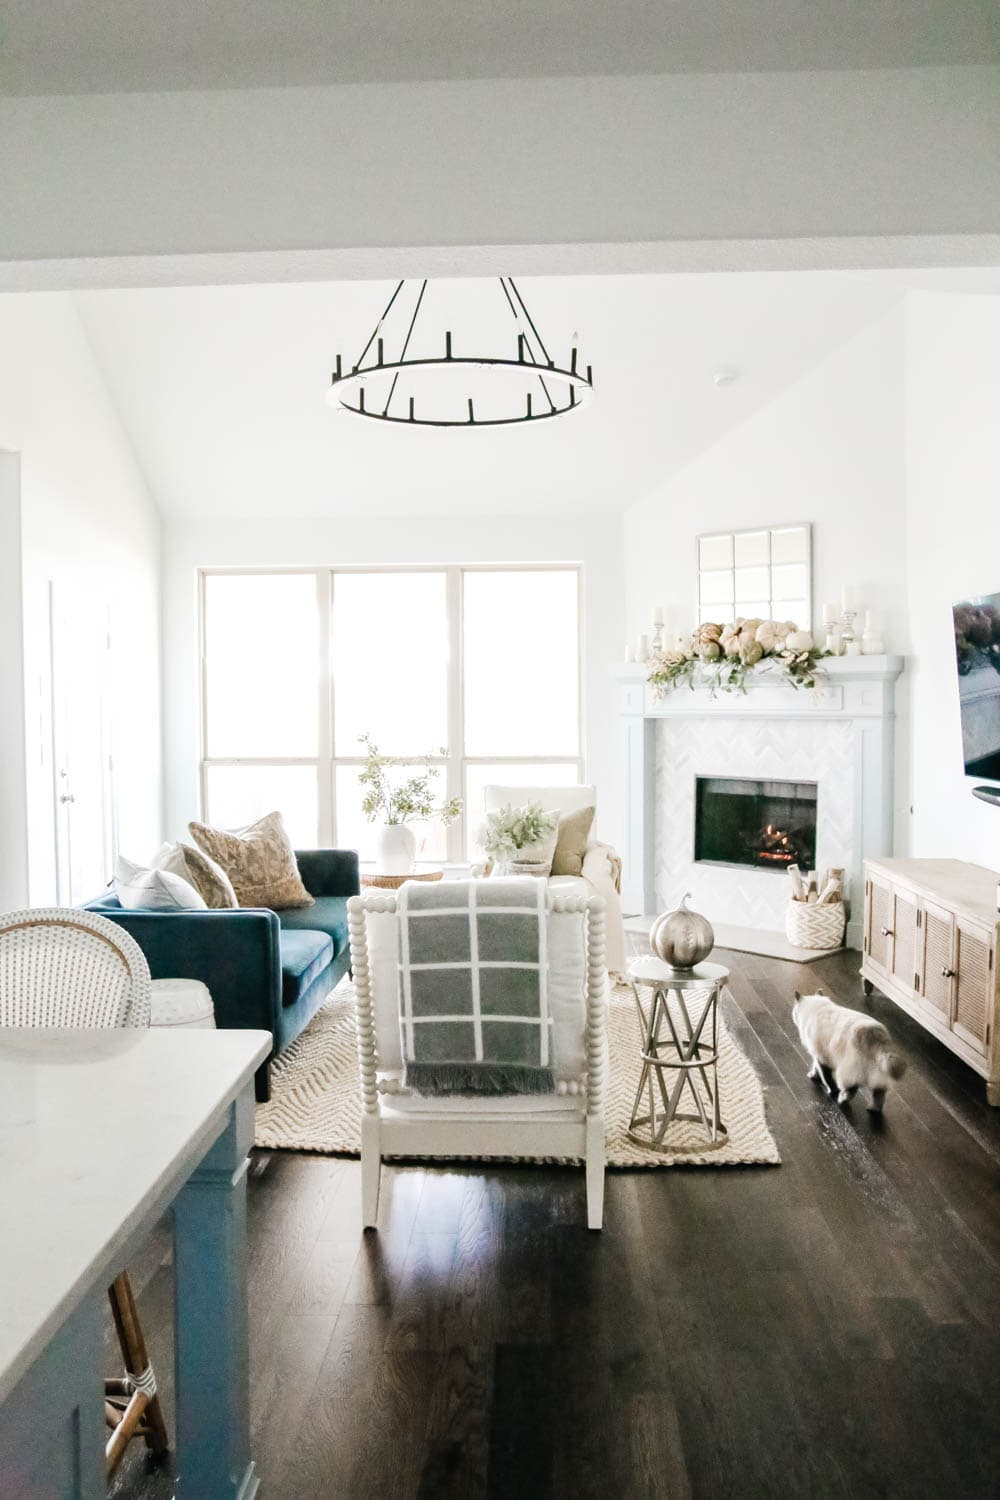 Open concept home, space planning ideas, fall decorating ideas with blue accents for fall. #ABlissfulNest #fallinspiration #falldecorating #livingroomideas